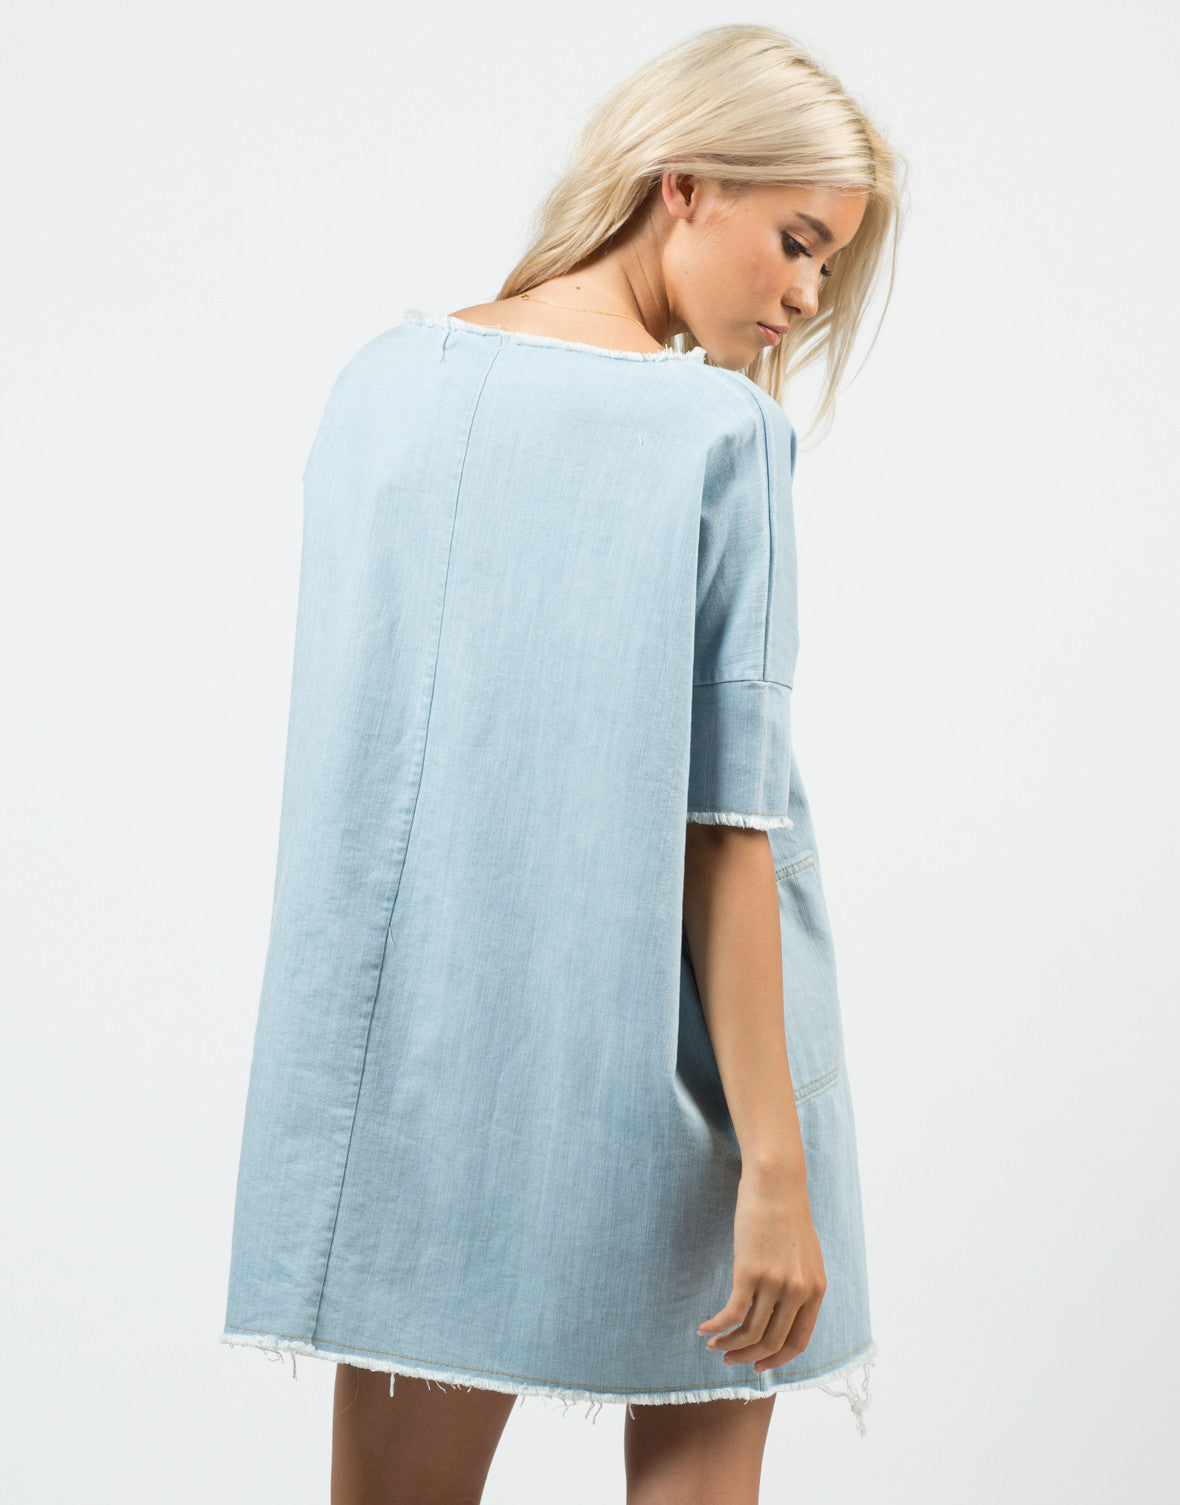 Back View of Denim Shirt Dress